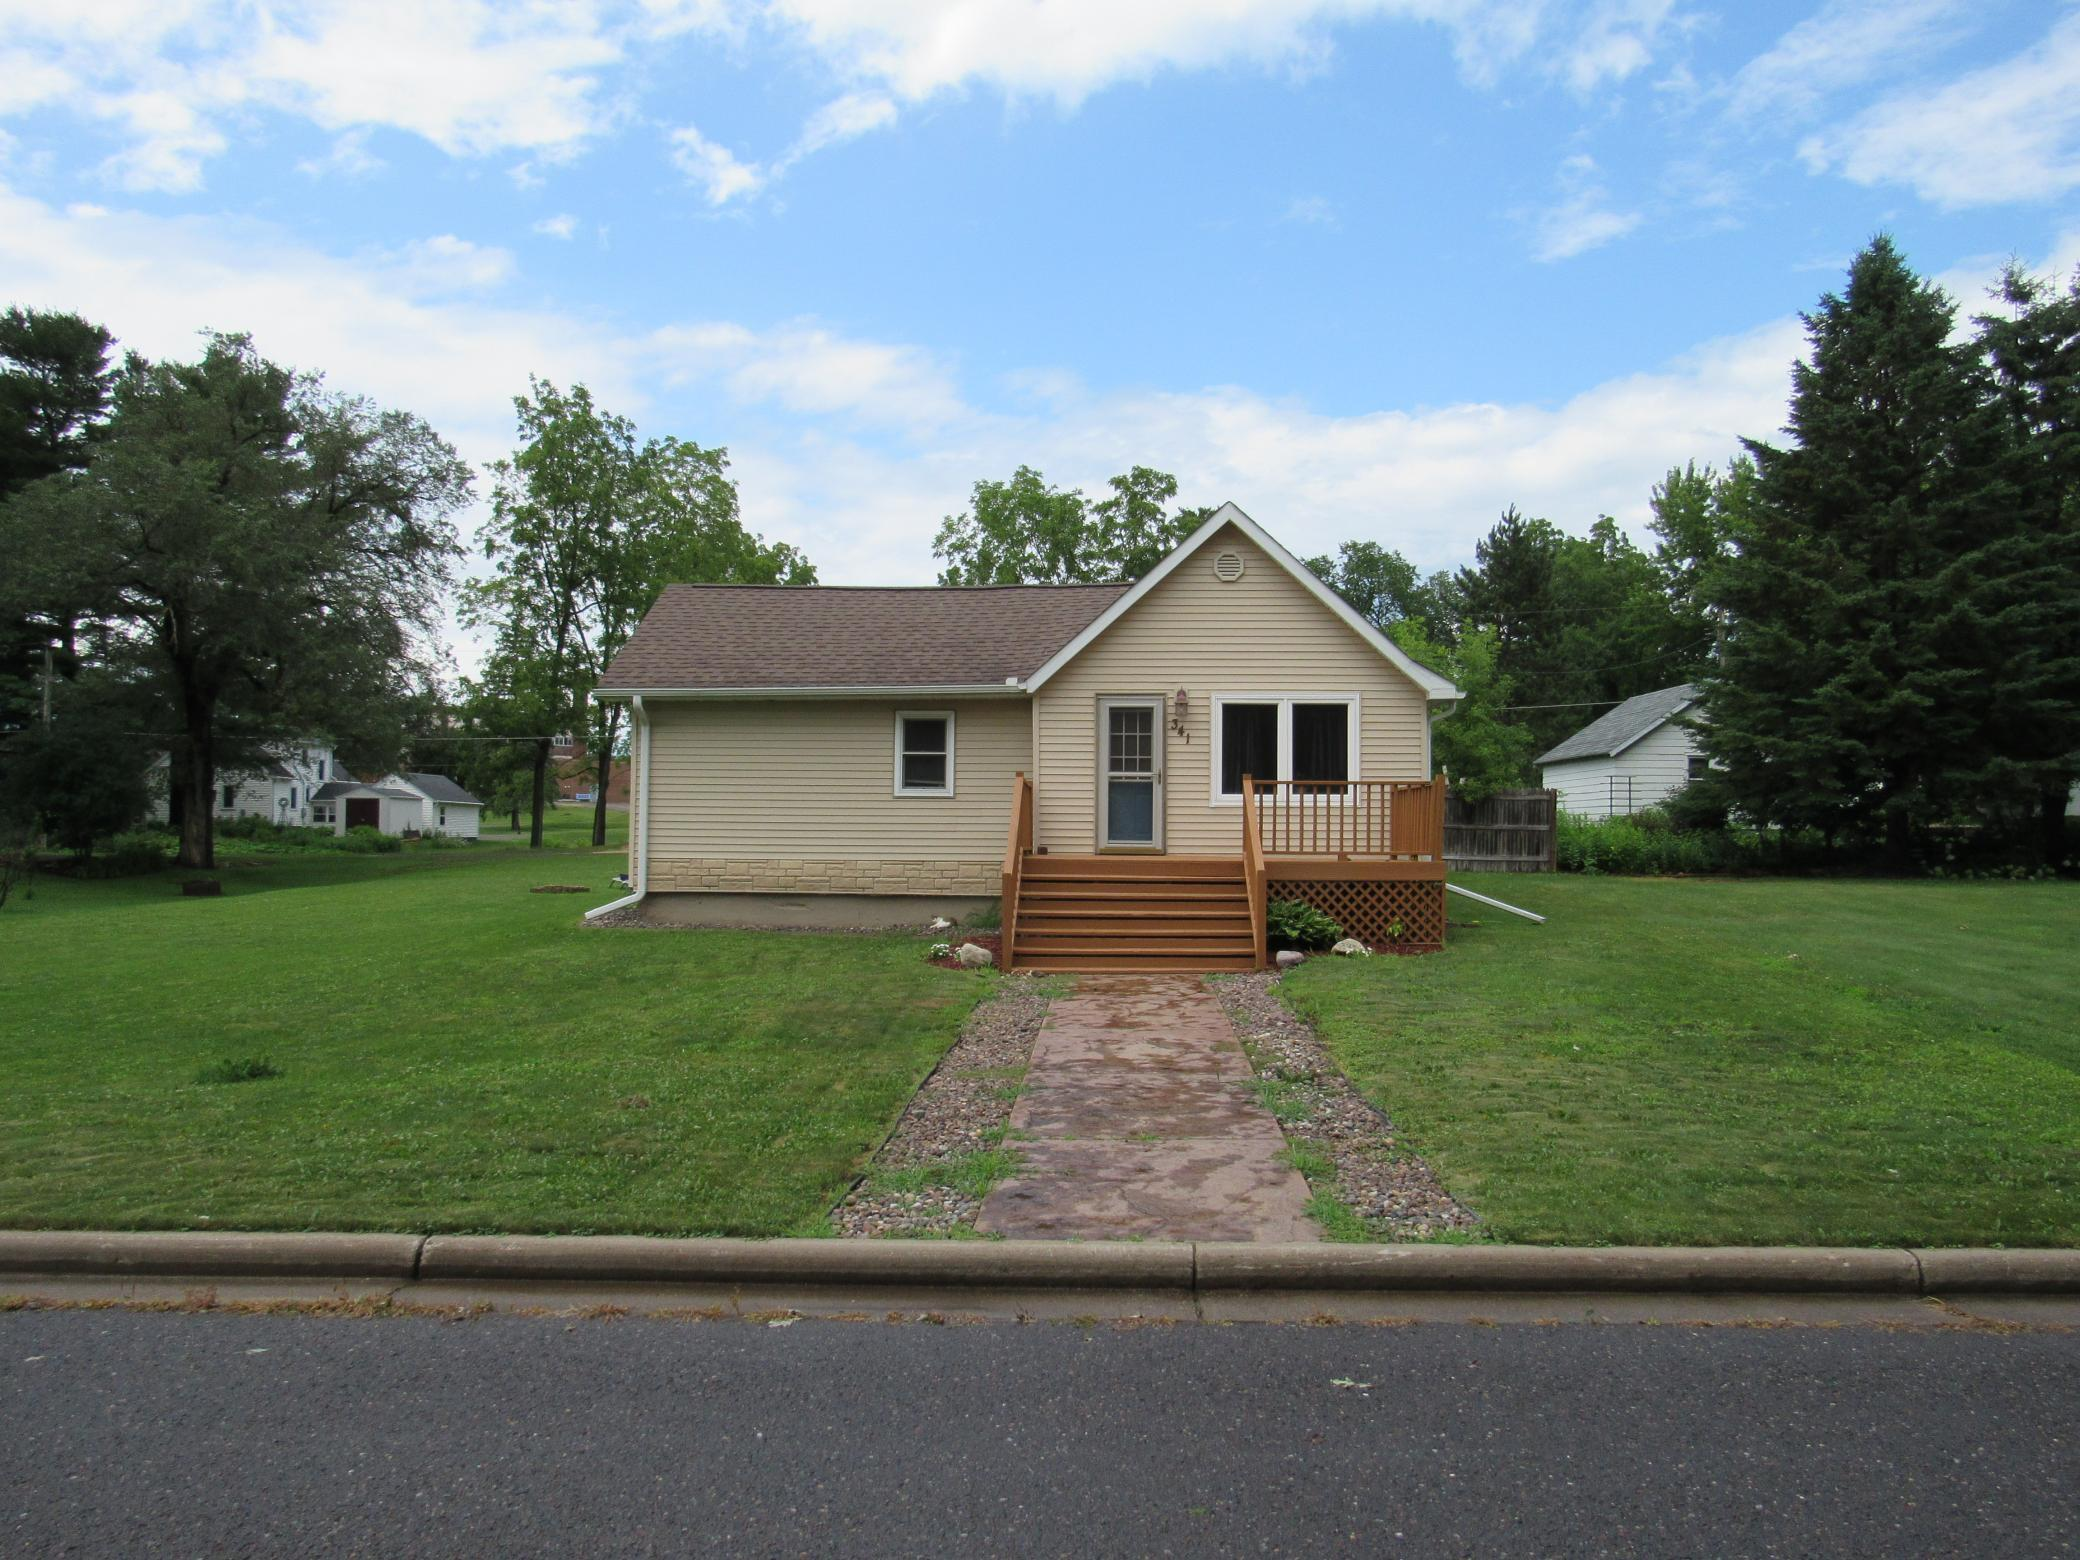 341 7th Property Photo - Clear Lake, WI real estate listing